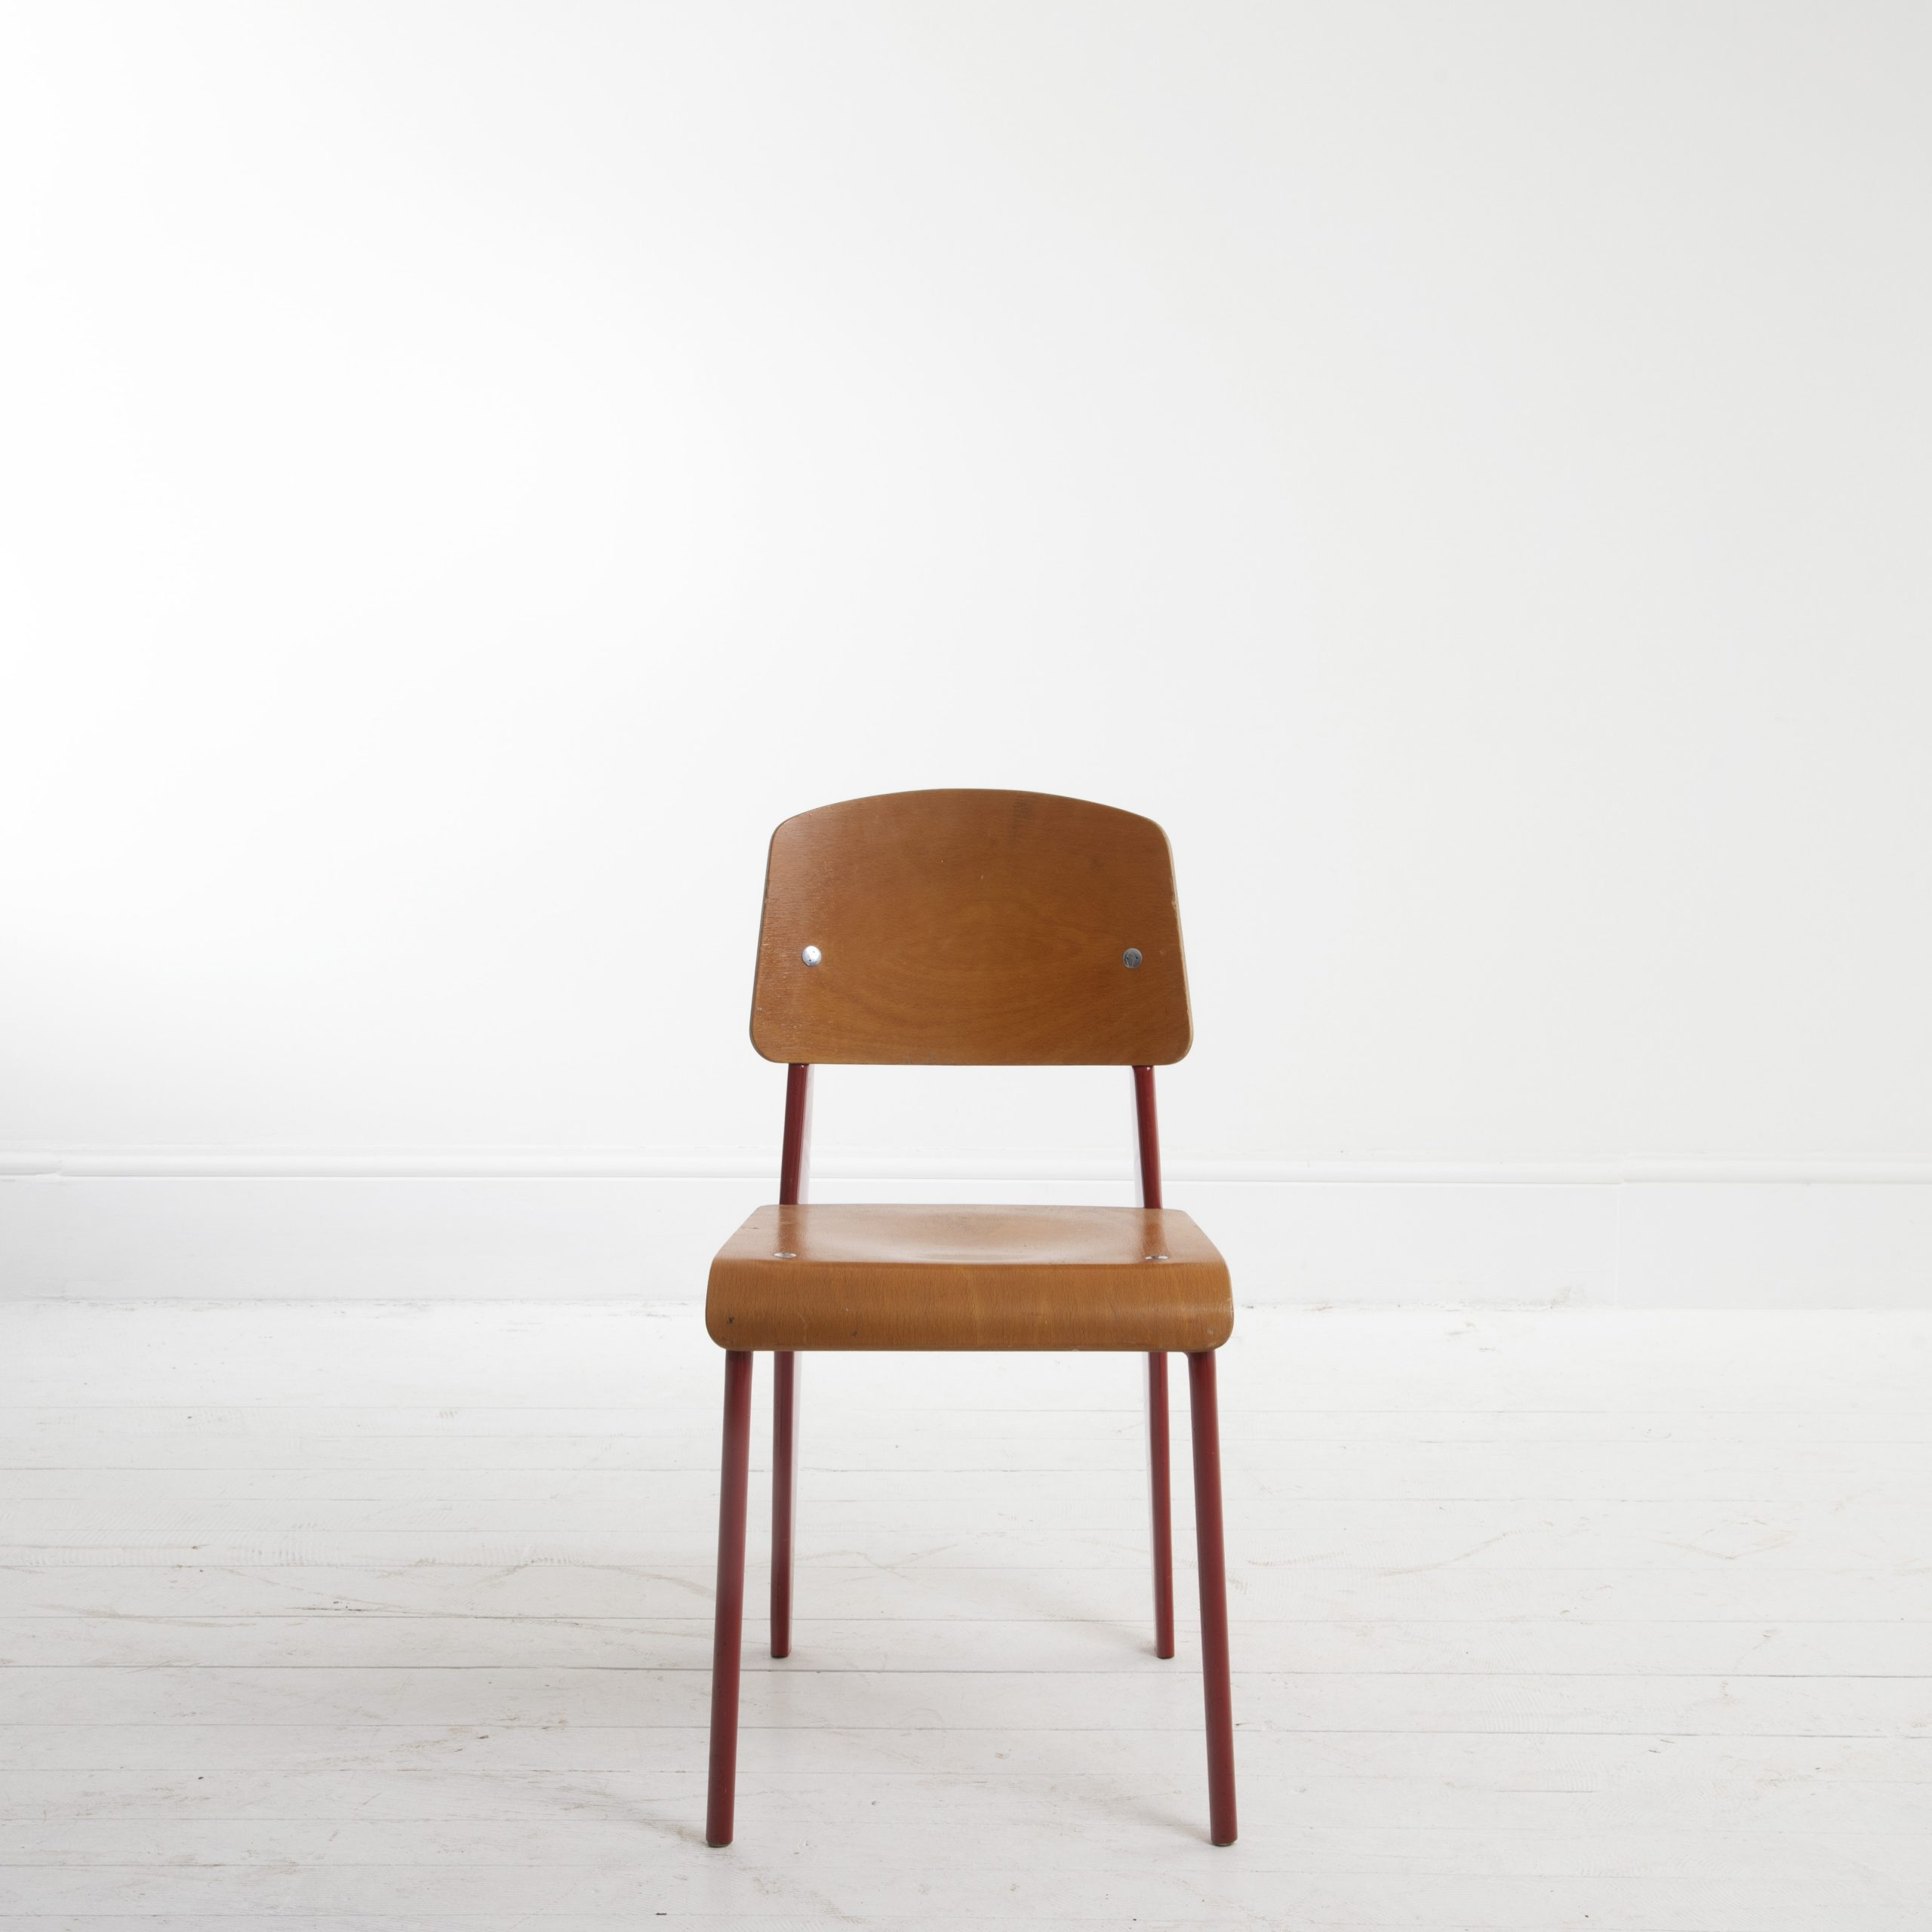 Standard Chair by Jean Provve